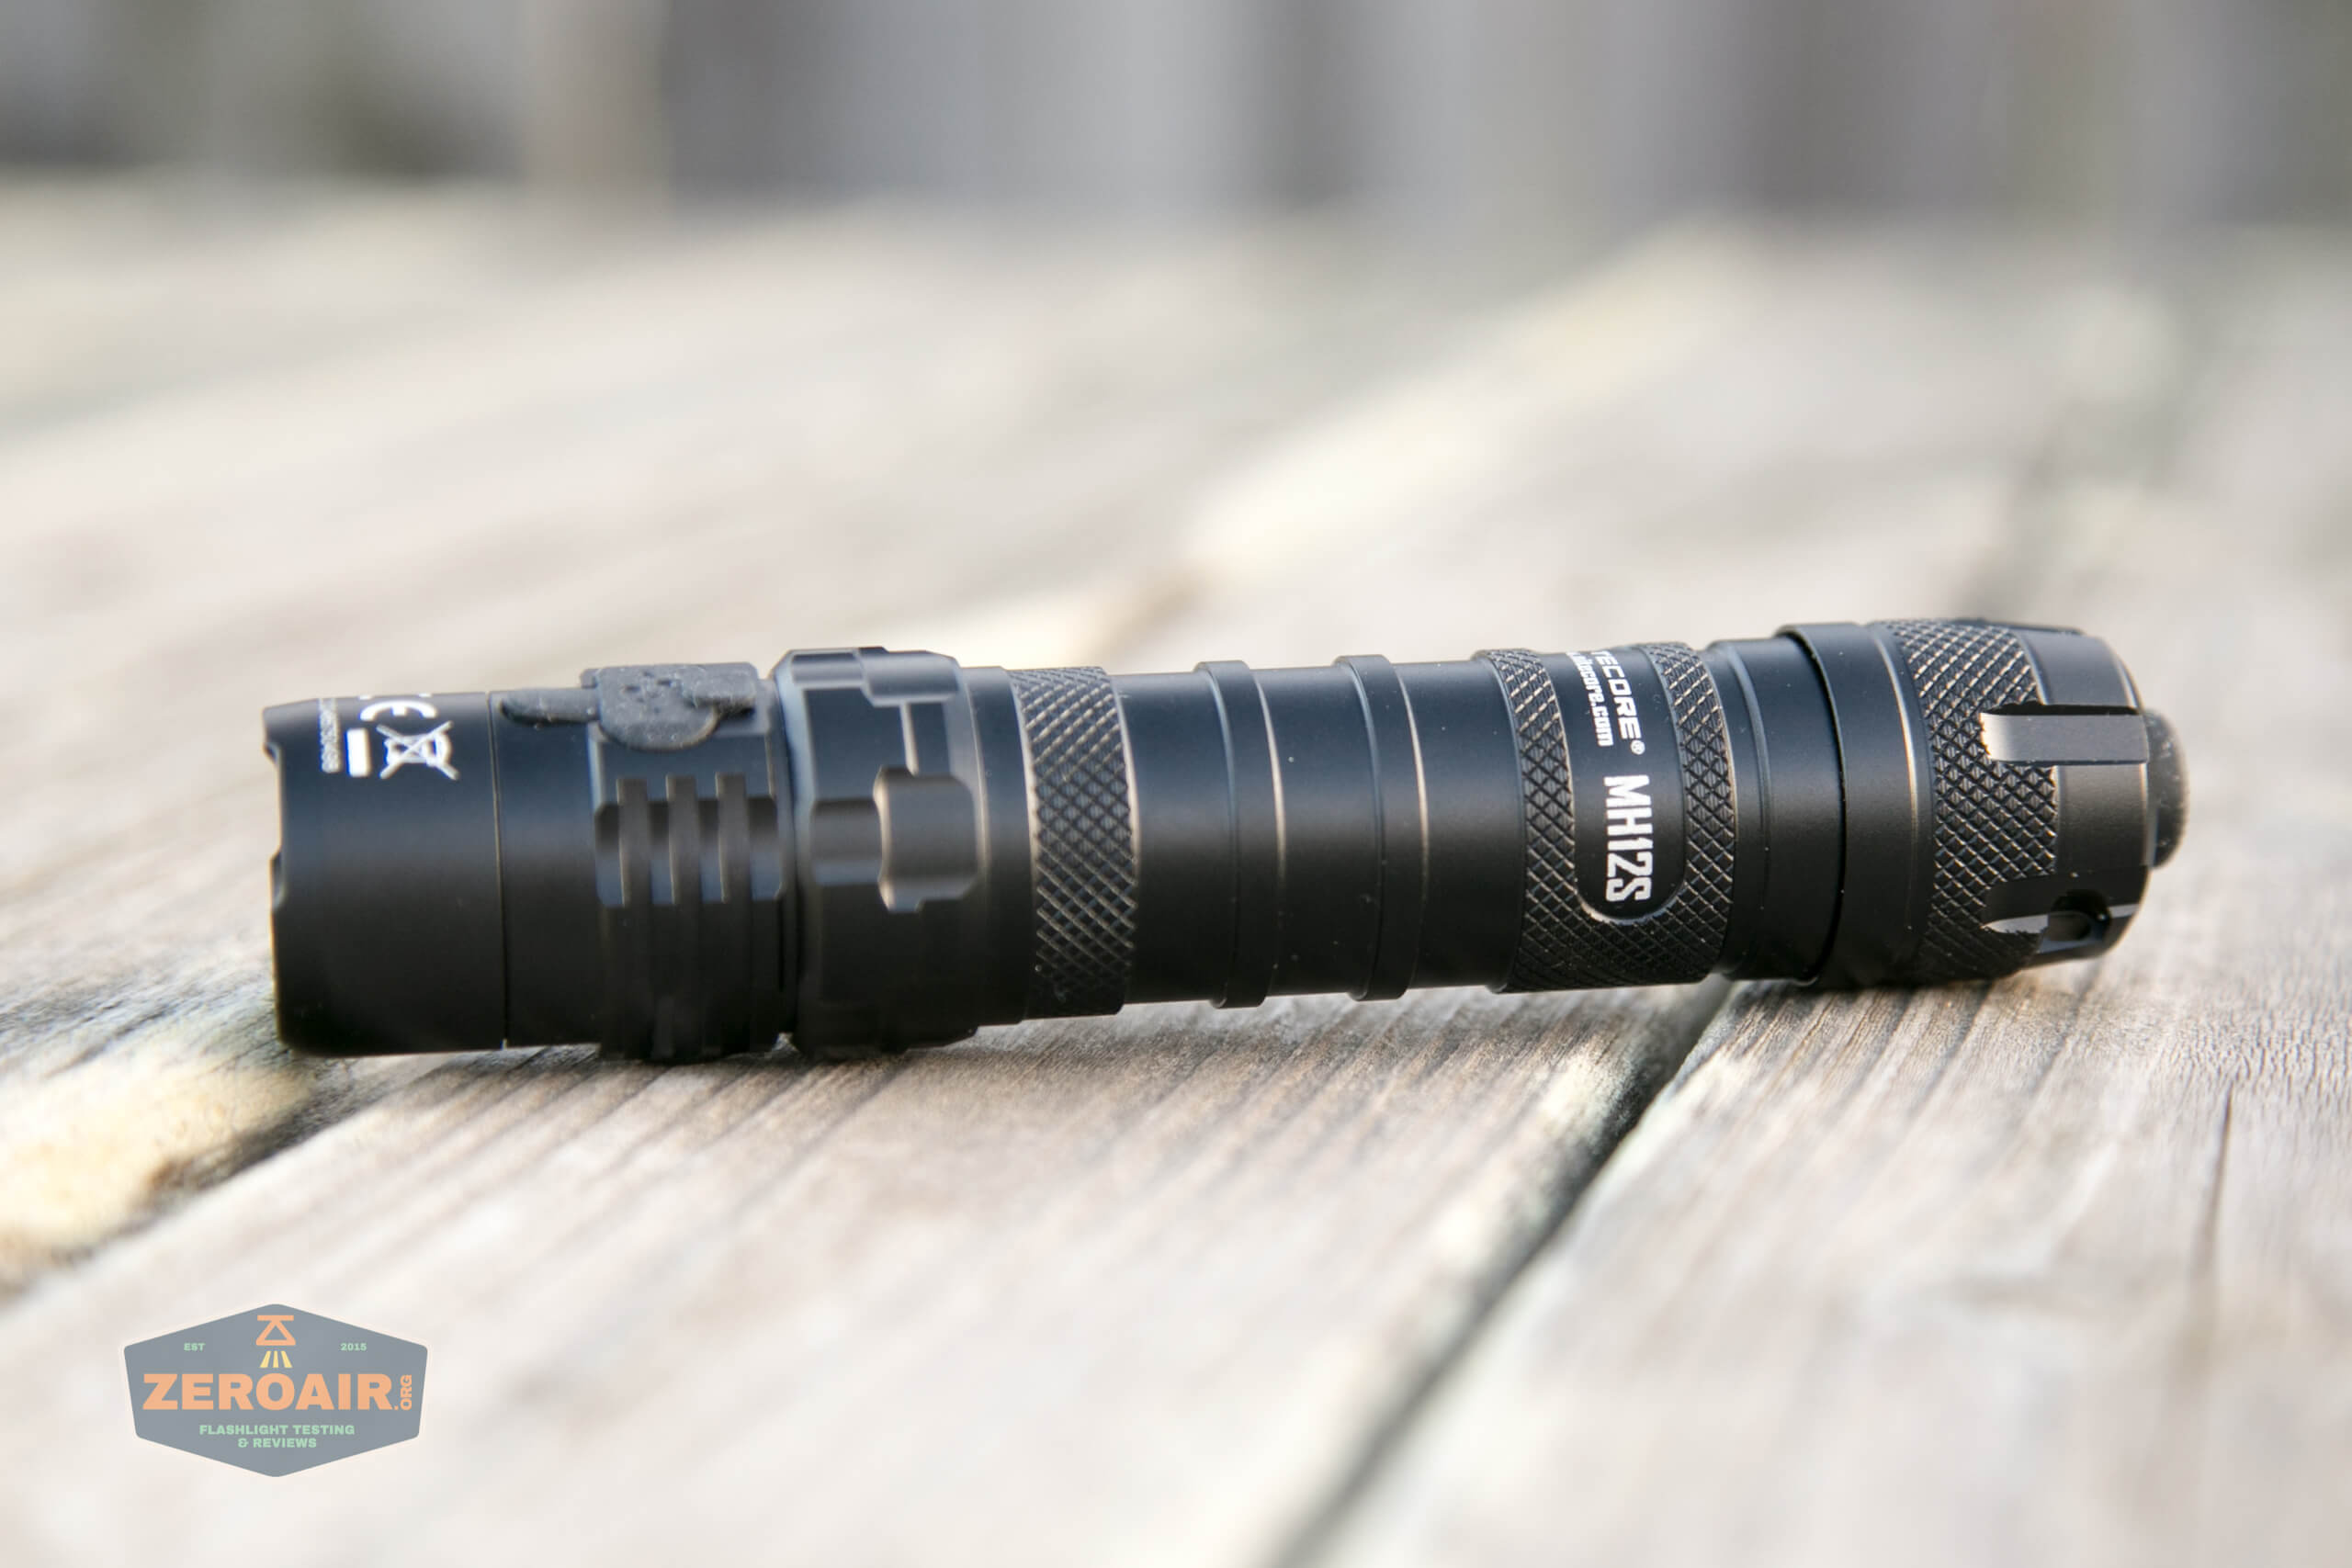 nitecore mh12s tactical flashlights laying on side